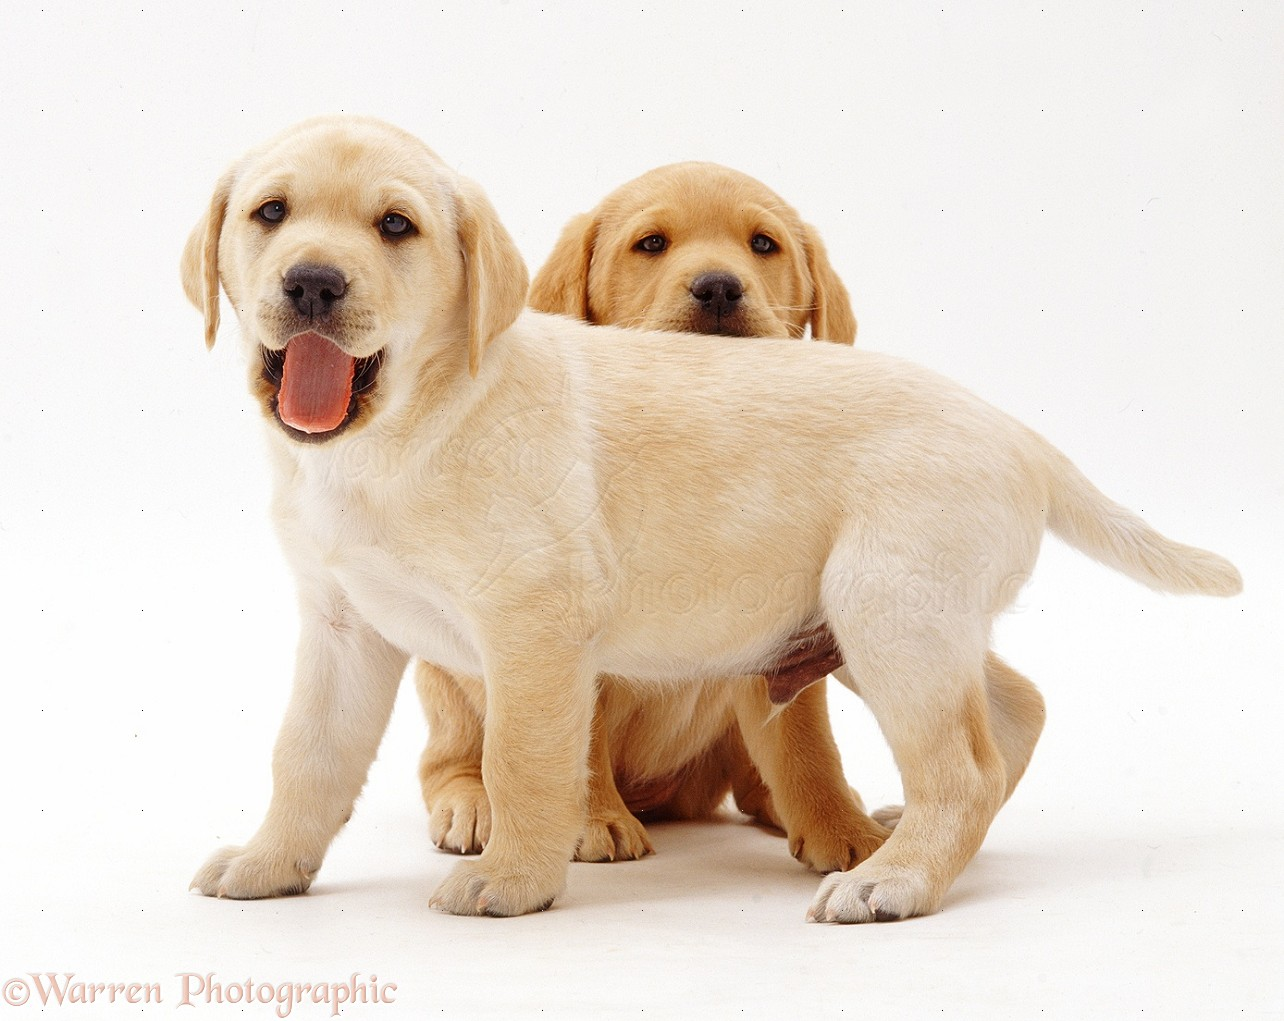 Dogs Two Yellow Labrador Retriever Pups 6 Weeks Old Photo Wp37661